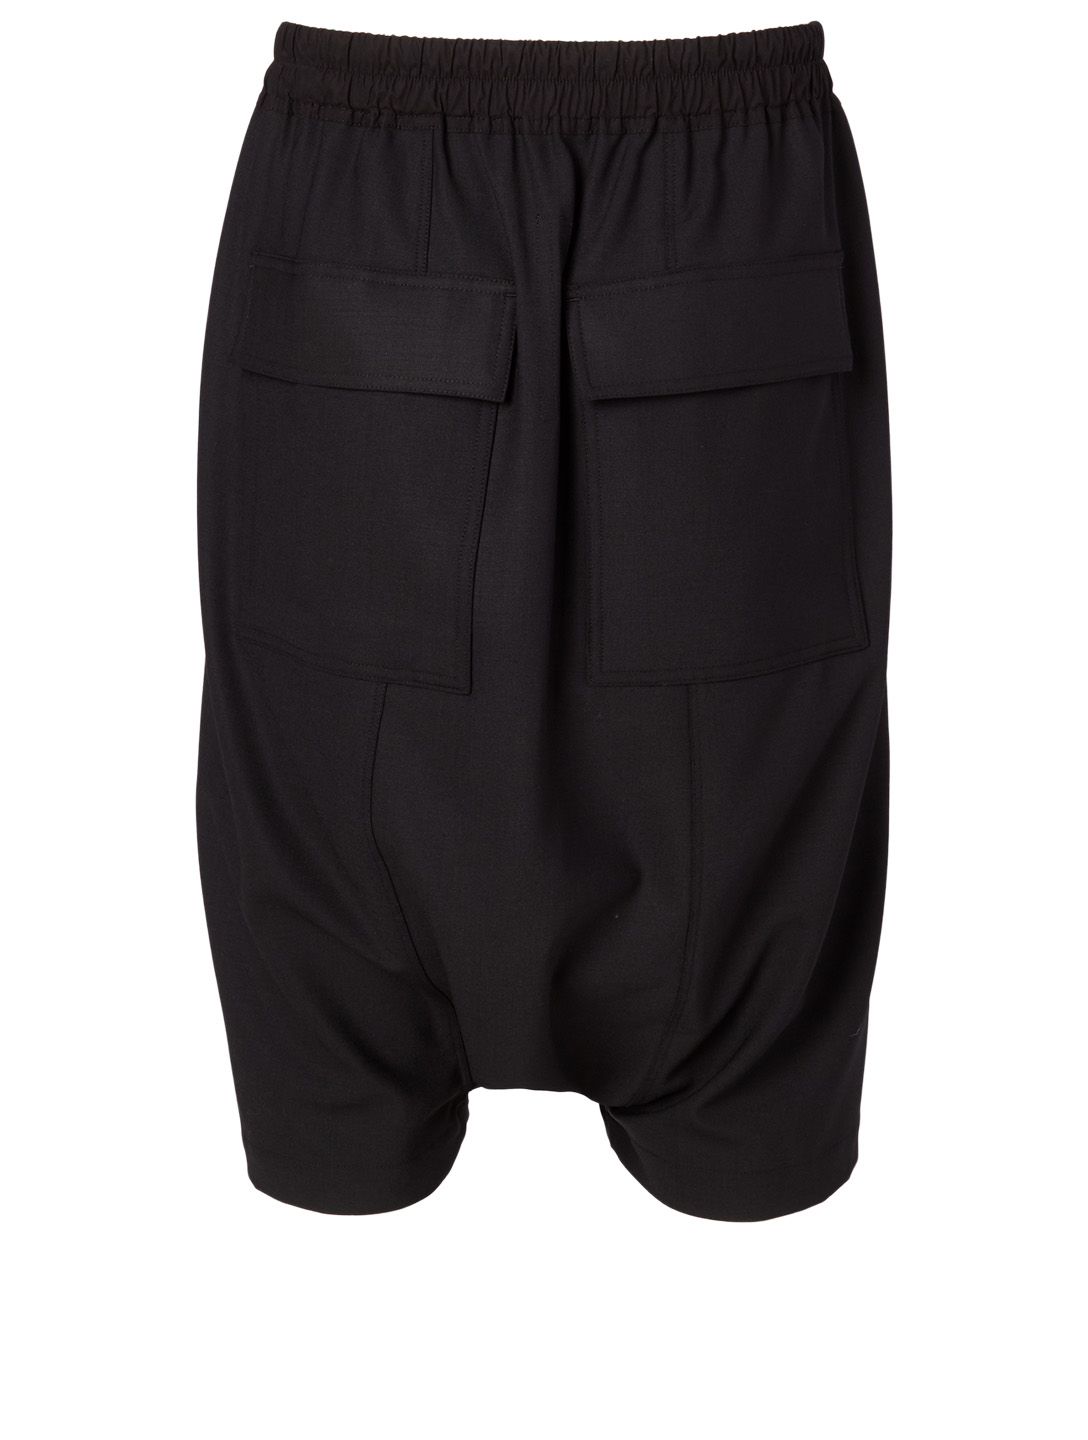 RICK OWENS Wool-Blend Shorts Men's Black